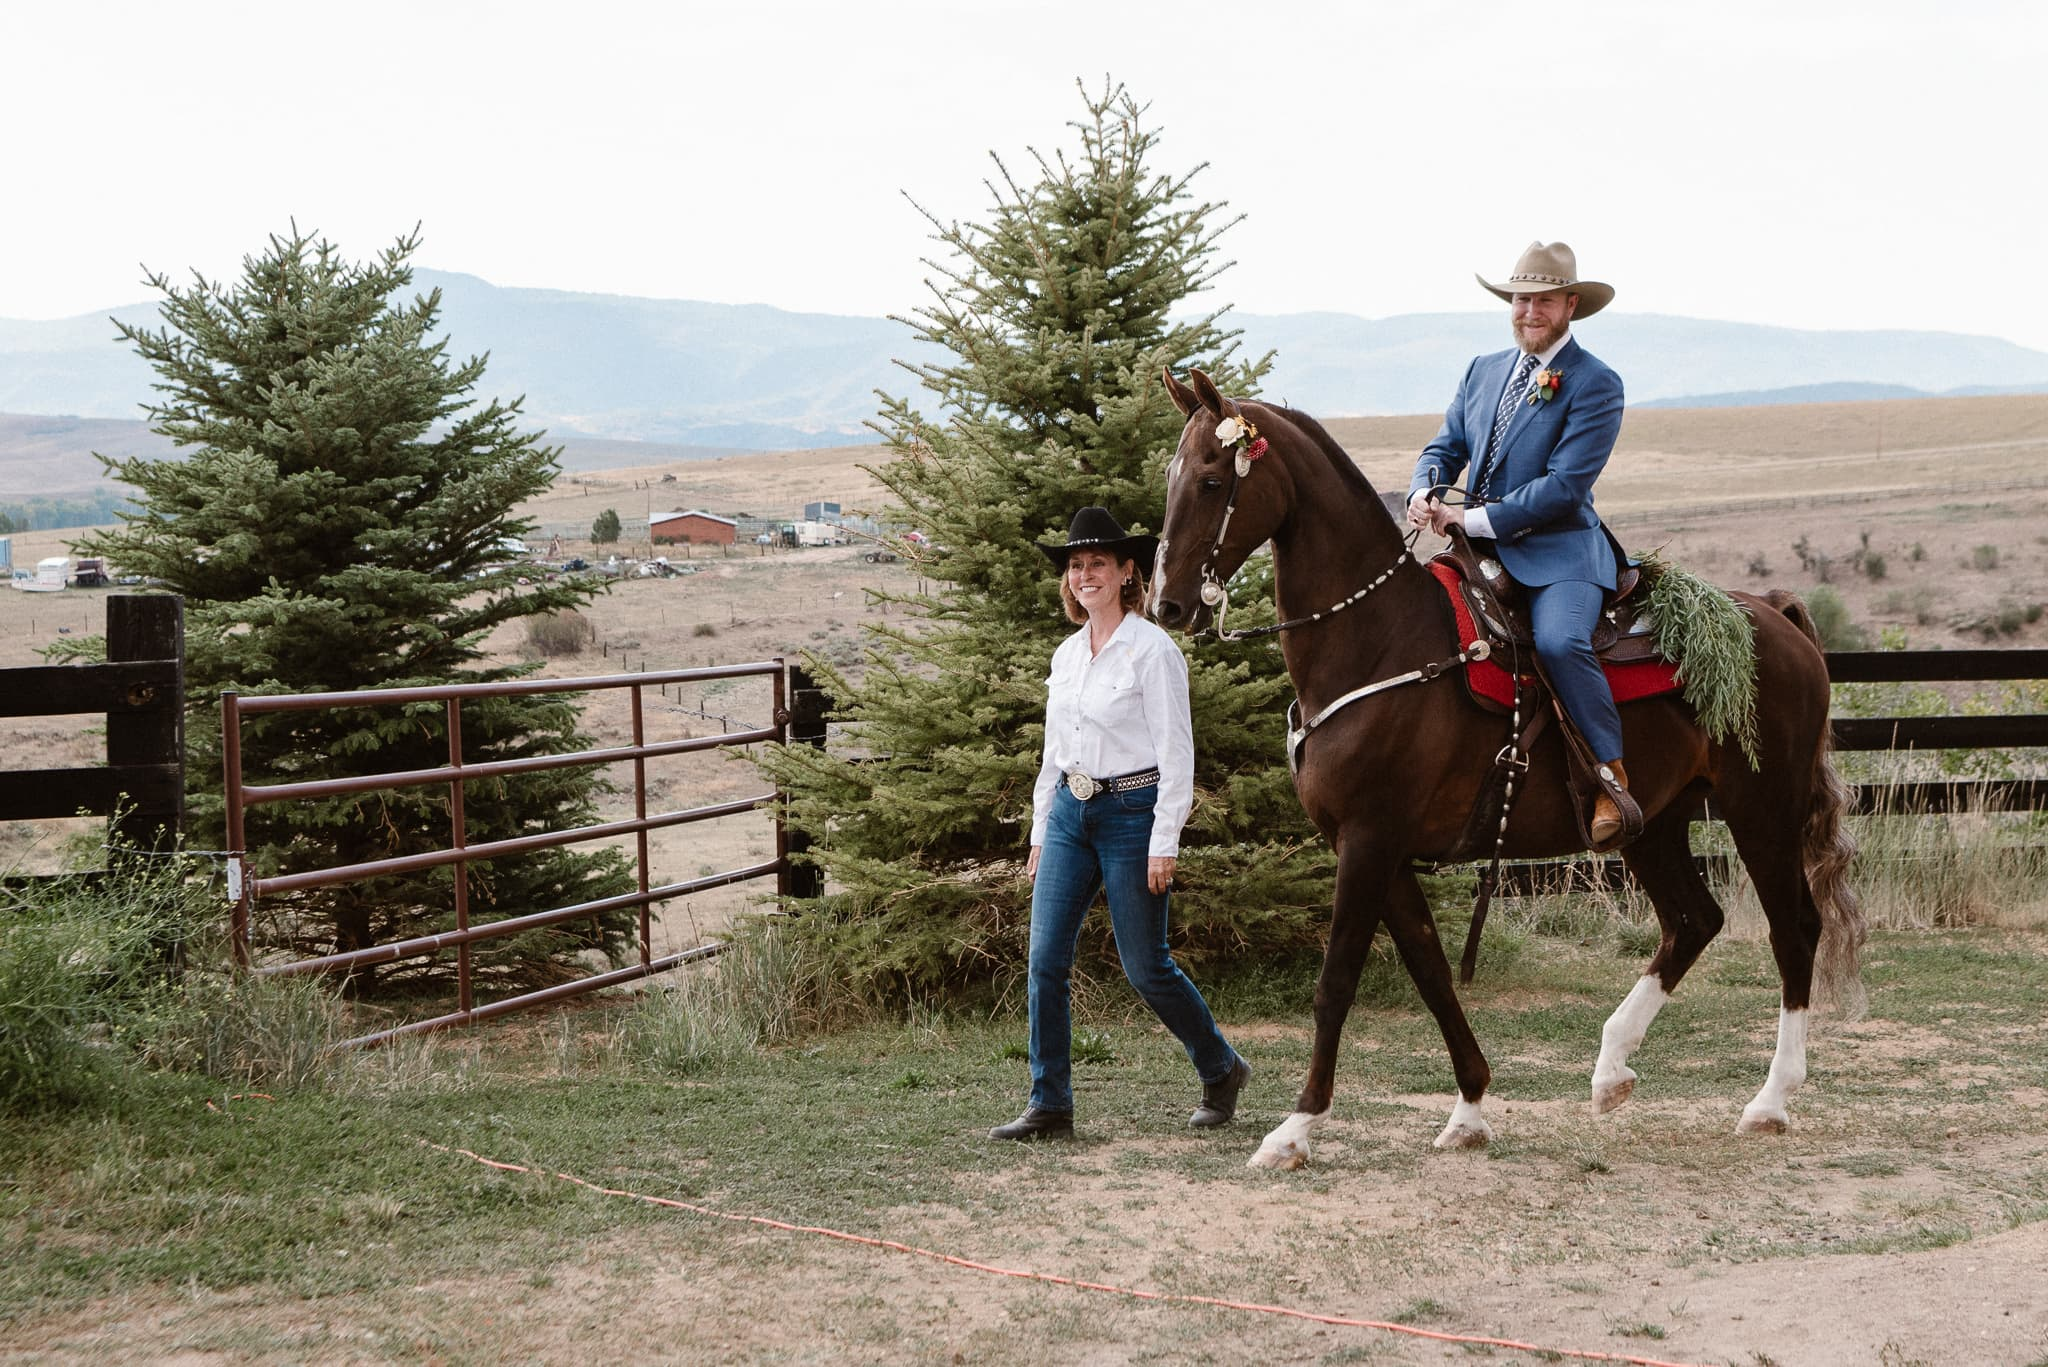 Steamboat Springs wedding photographer, La Joya Dulce wedding, Colorado ranch wedding venues, outdoor wedding ceremony, groom riding horse to ceremony